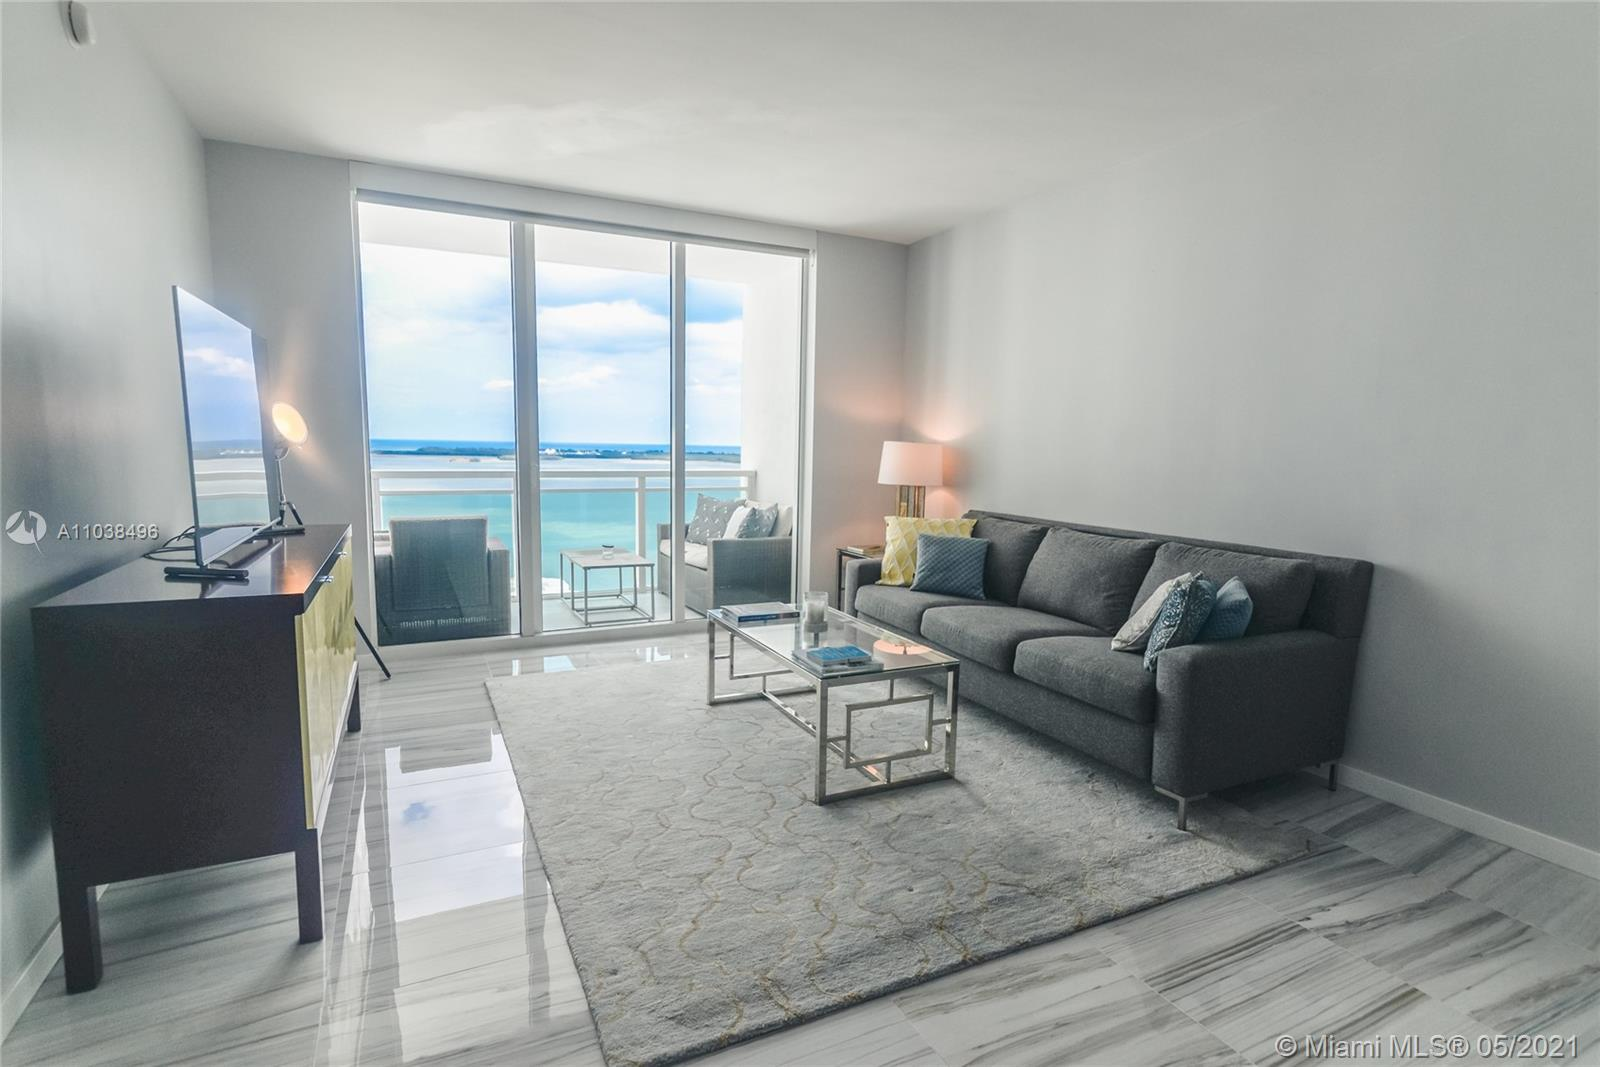 The Plaza on Brickell 2 #2902 - 951 Brickell Ave #2902, Miami, FL 33131